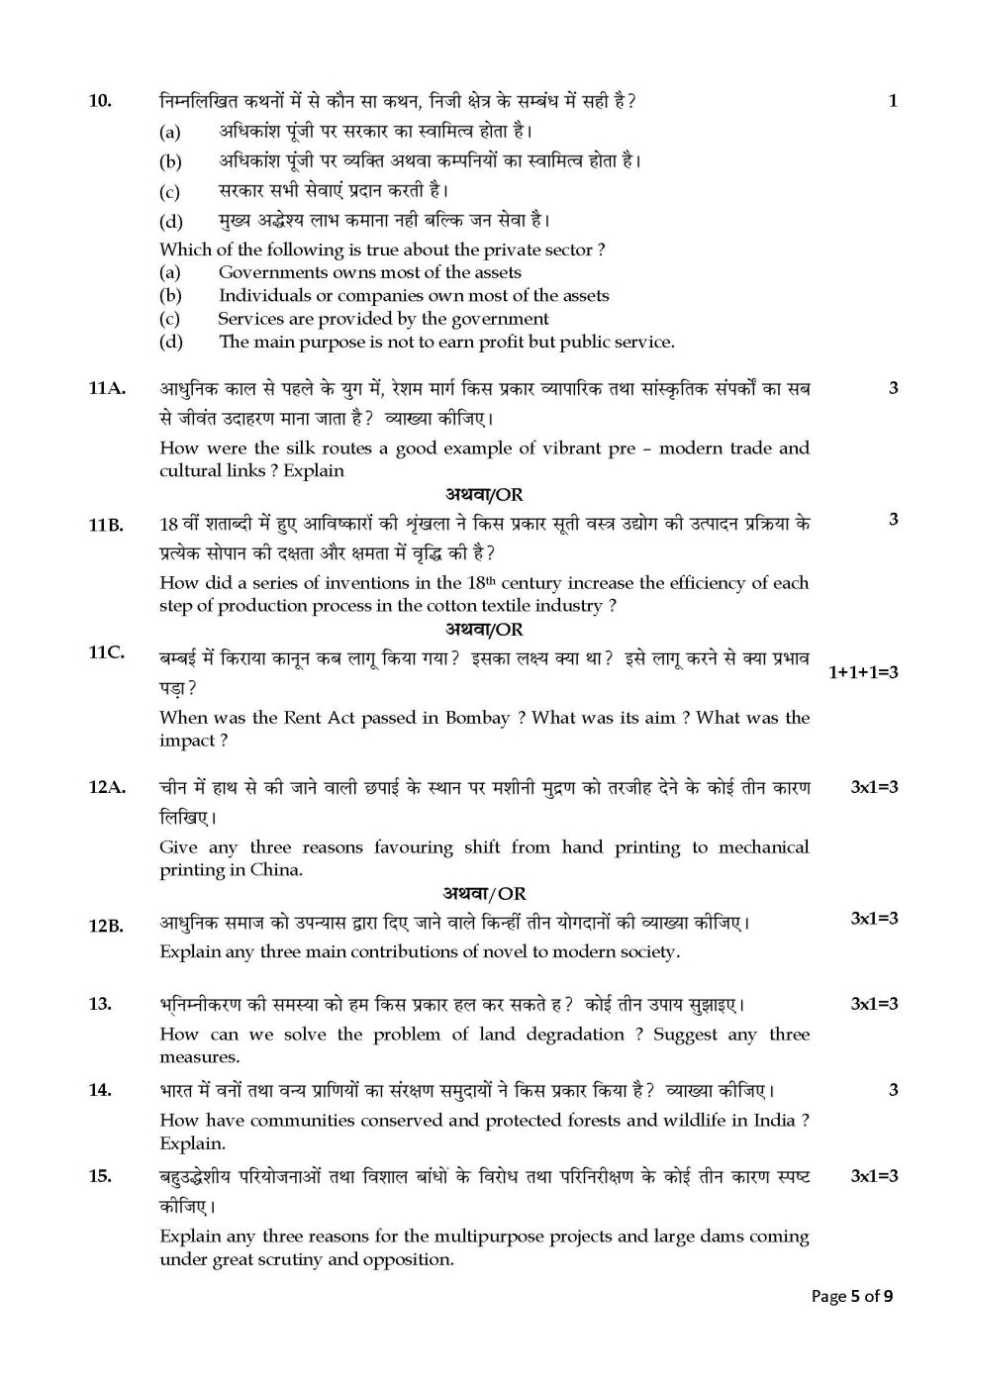 CBSE Class 10th SA I Sample Question Papers - 2015-2016 StudyChaCha